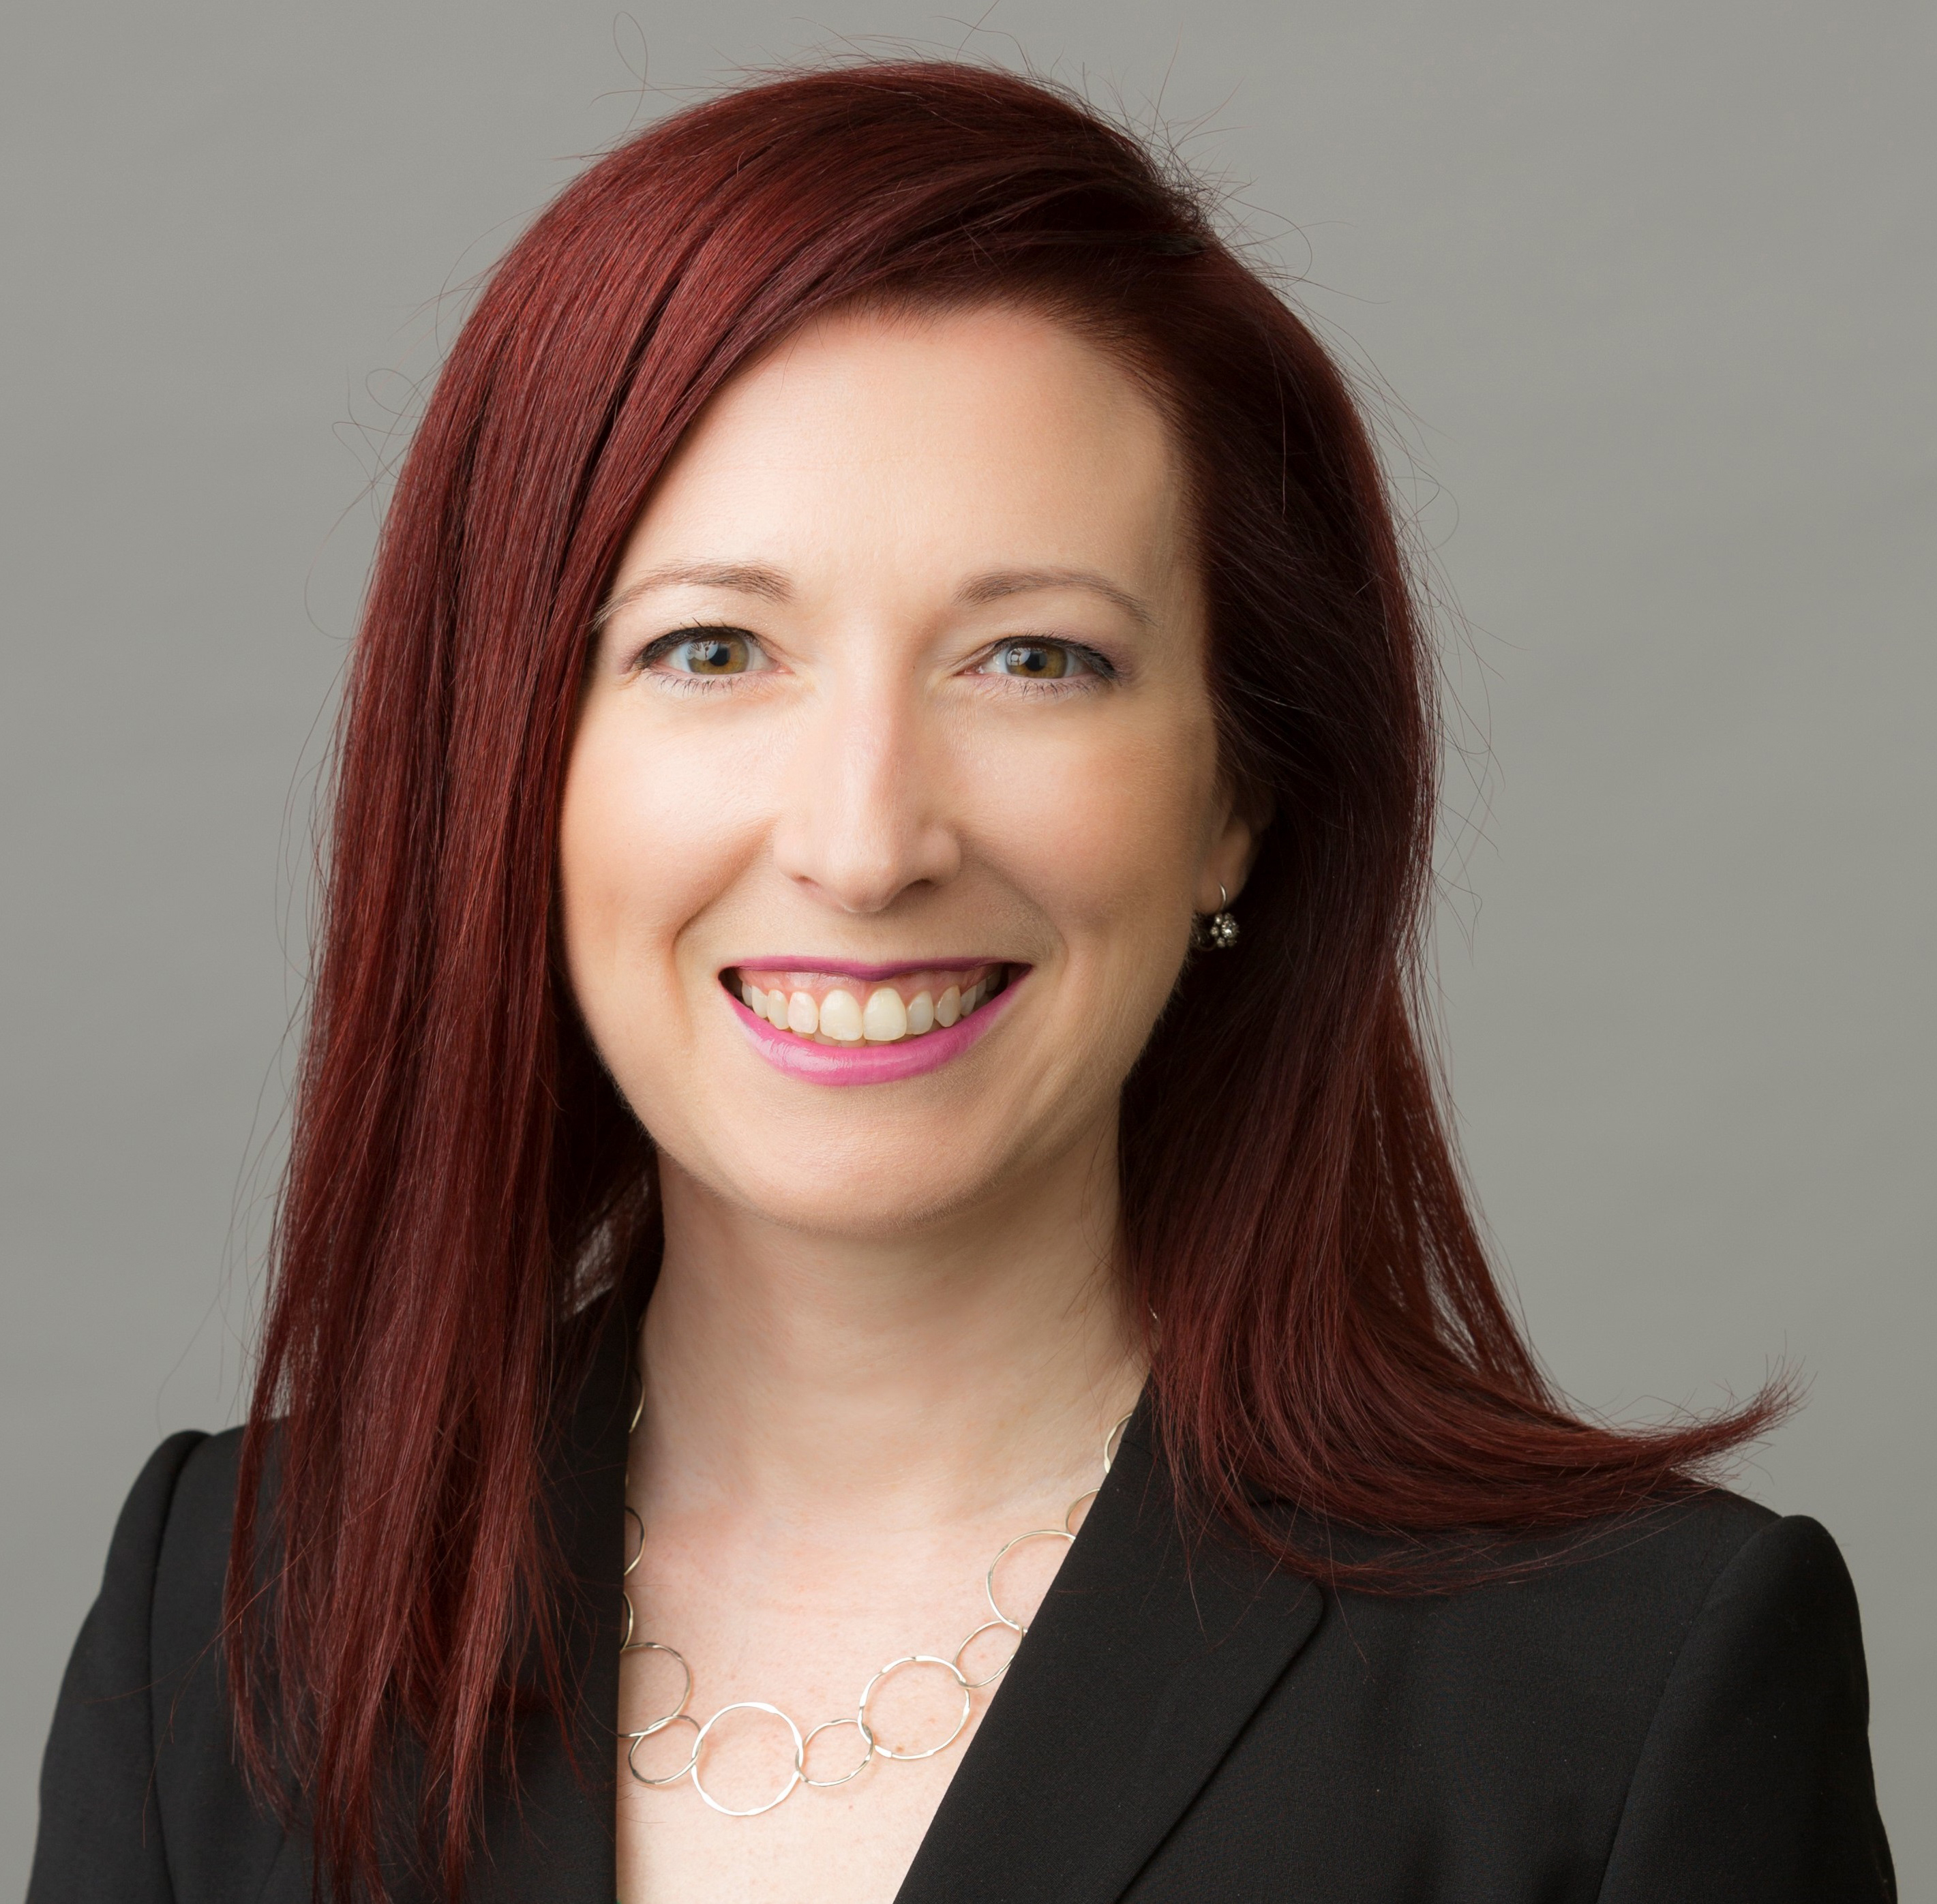 Marshall Gerstein partner Heather Kissling has been recognized among the 2016 Women Worth Watching by Profiles in Diversity Journal. (Photo: Business Wire)